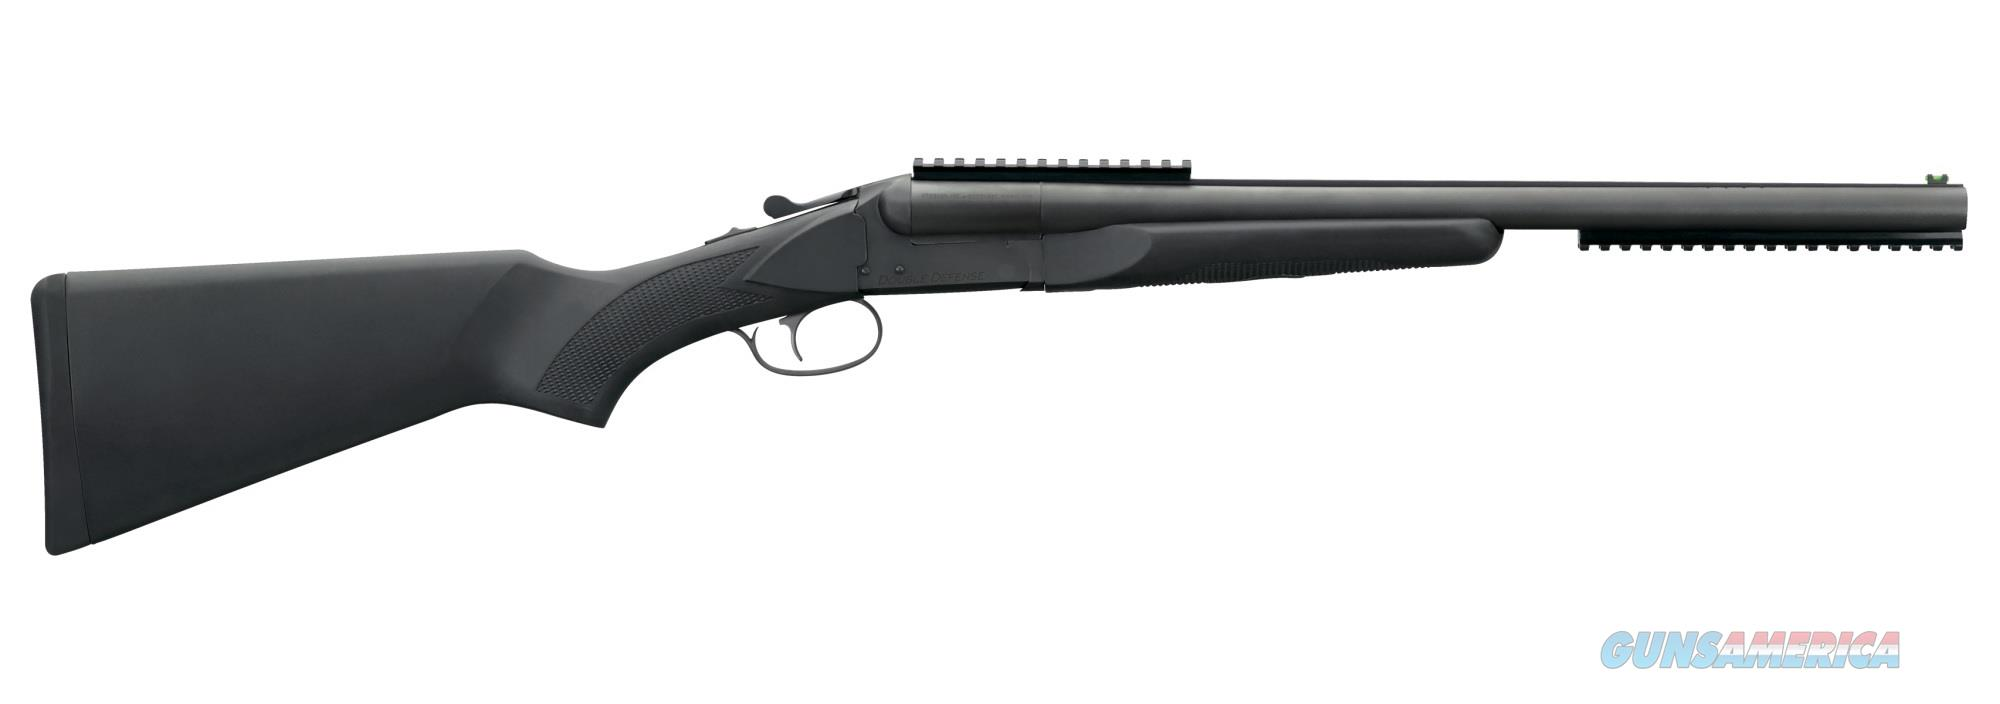 "Stoeger Double Defense 20"" SxS 12 Gauge 31446   Guns > Shotguns > Stoeger Shotguns"